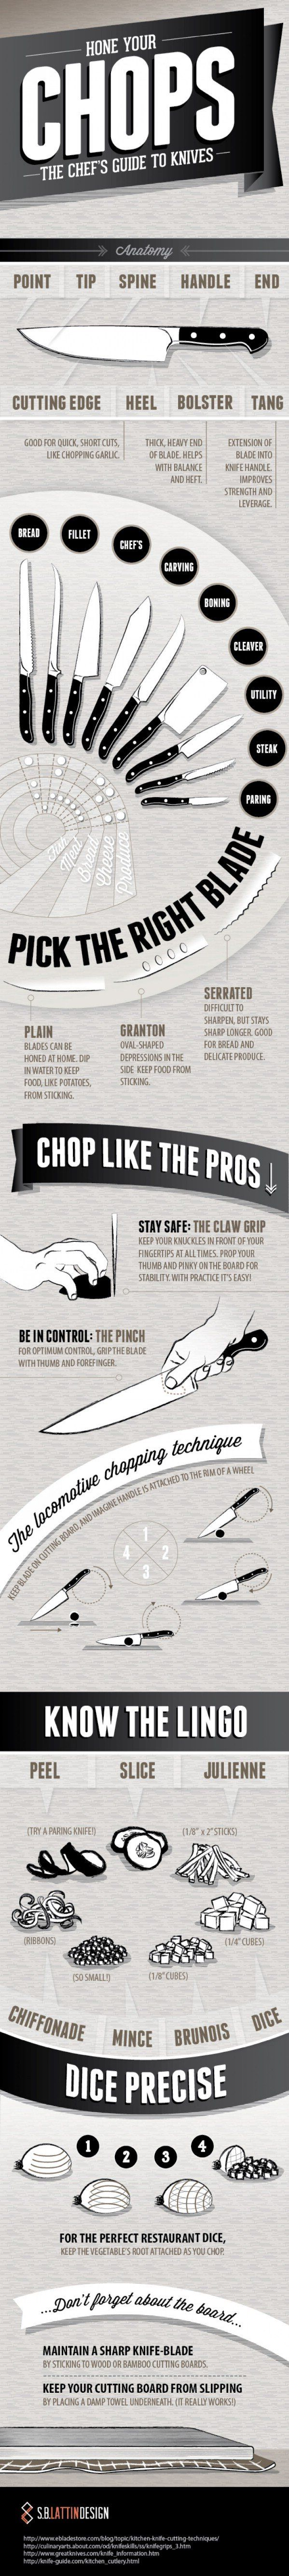 Knives Do you know which knife you are supposed to use for peeling? How about chopping or dicing? This handy guide will tell you what you need to know about knives and how to ensure that you are using the right one for your cooking tasks. It even gives you the difference between chopped and diced and several other hints and pointers. Infographic Source – Visual.ly